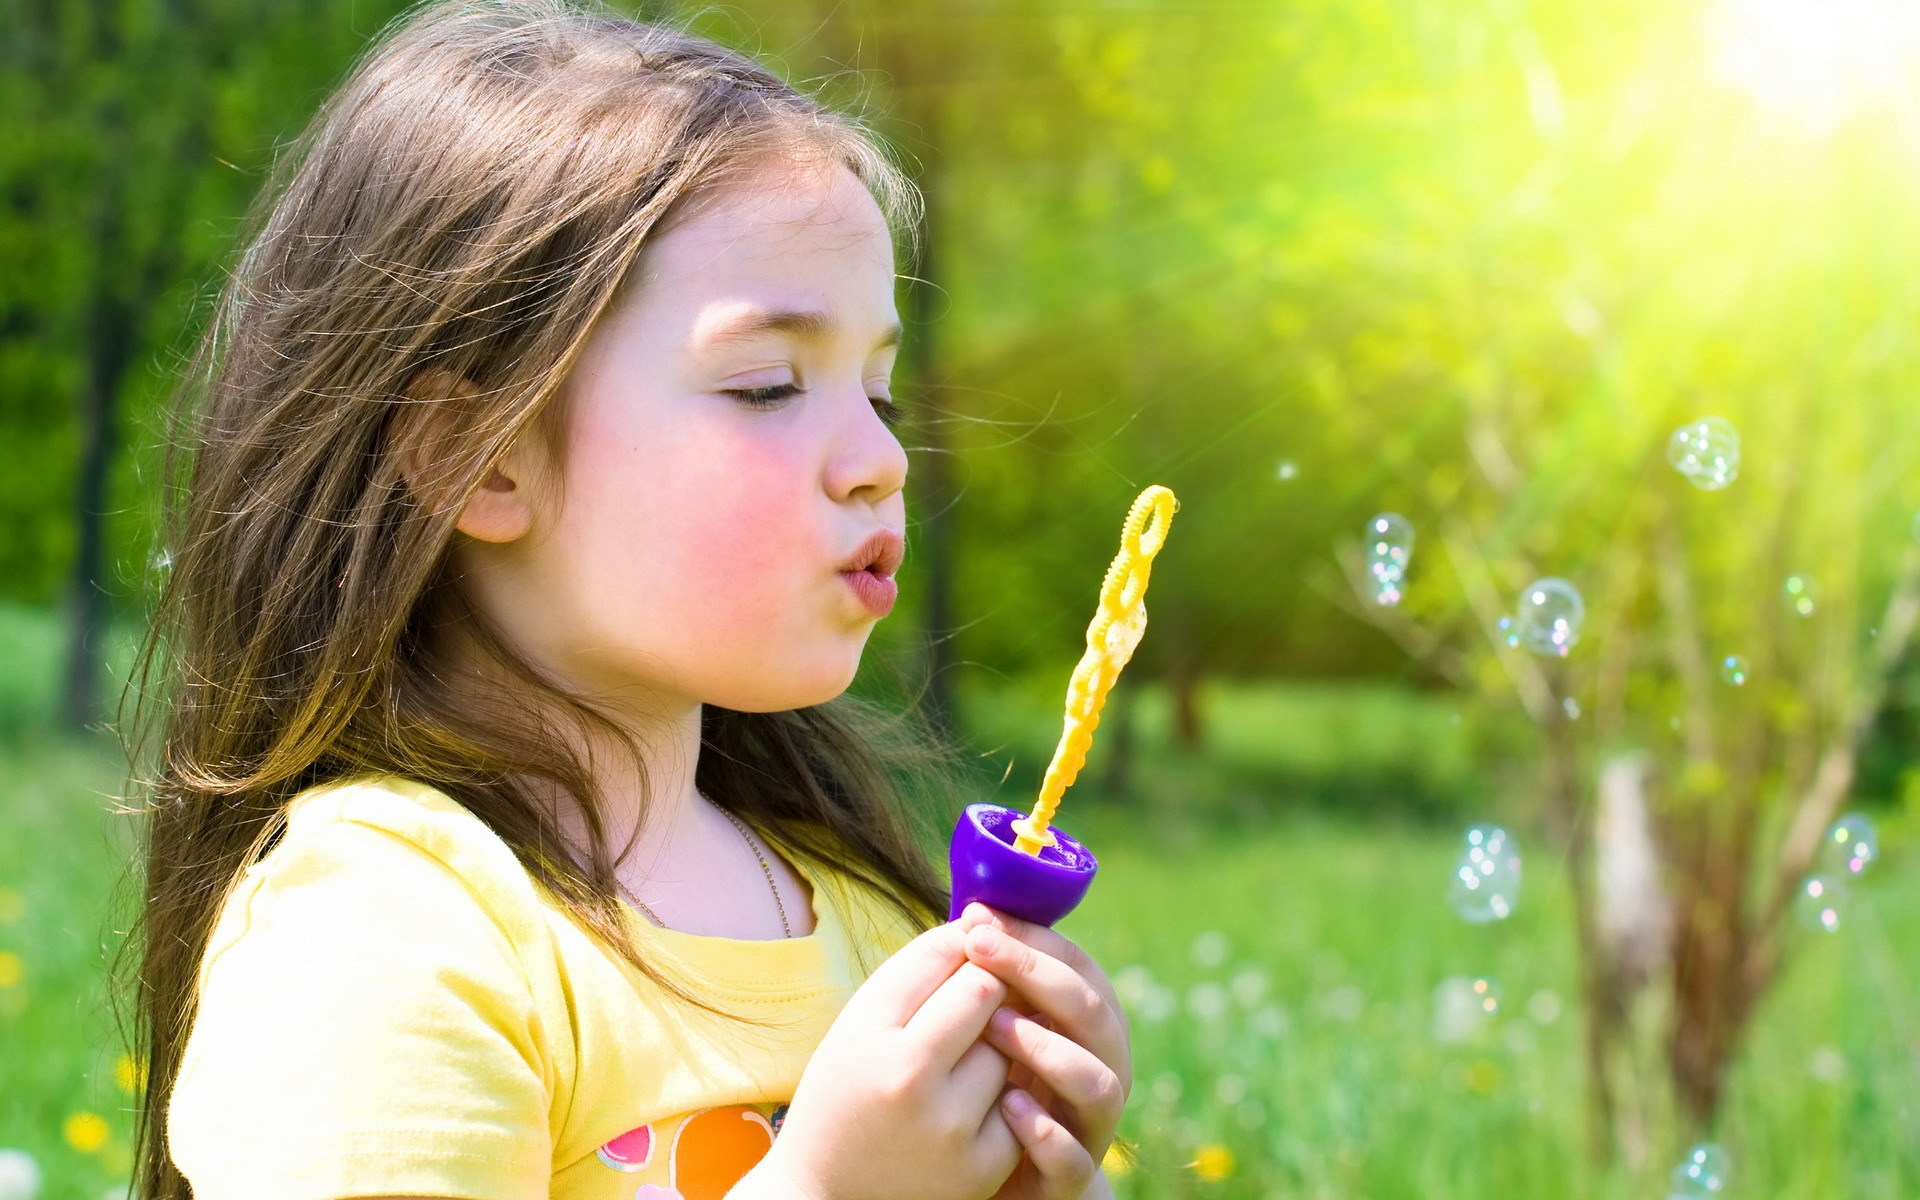 child-girl-bubbles-grass-hobby-breathing